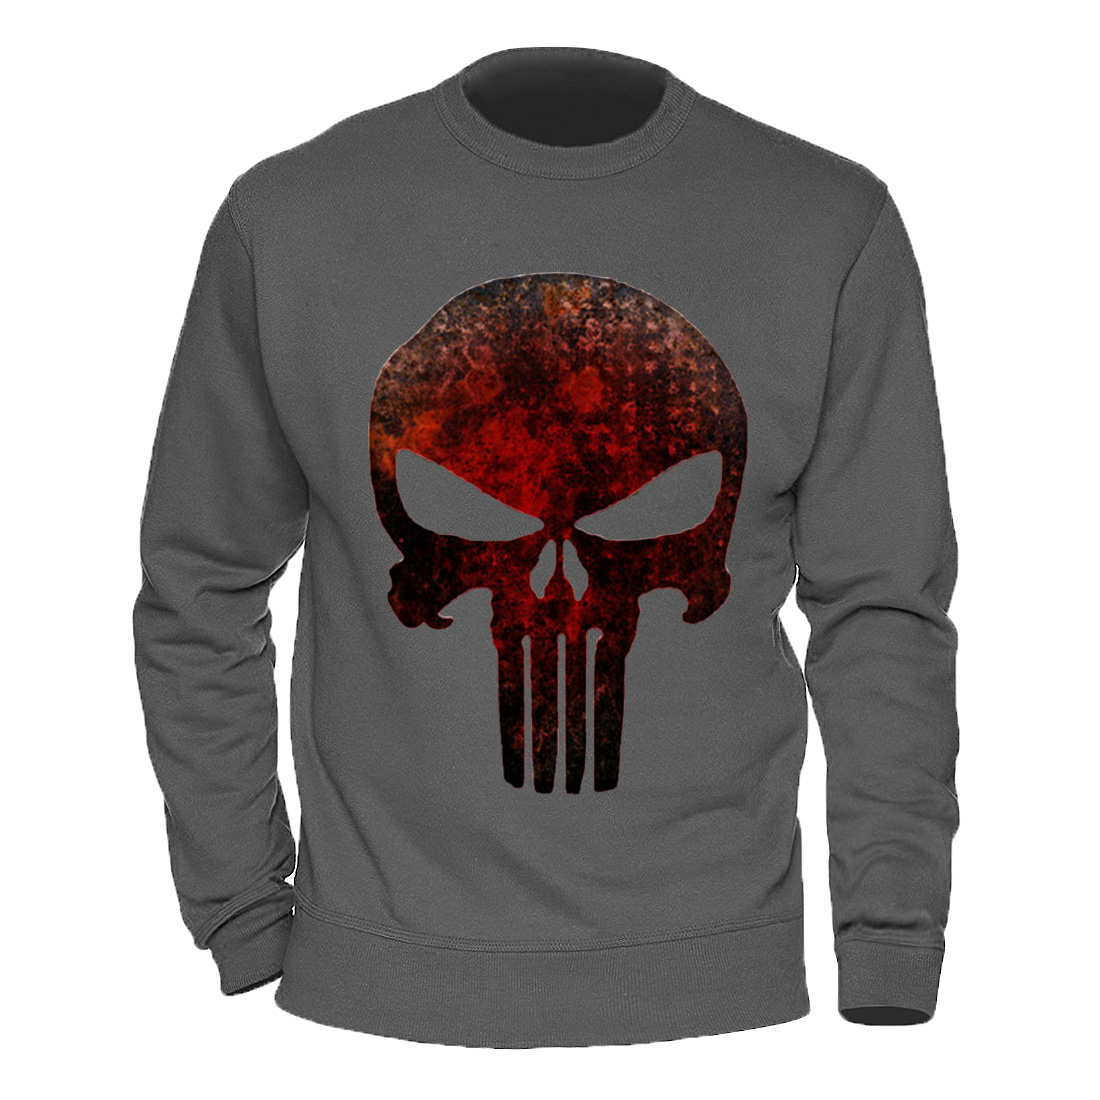 Terror Skull Ghost Sweatshirt Men Punisher Black Summer Long Sleeve Hoodies Tops Printing Casual Cotton Male Clothing